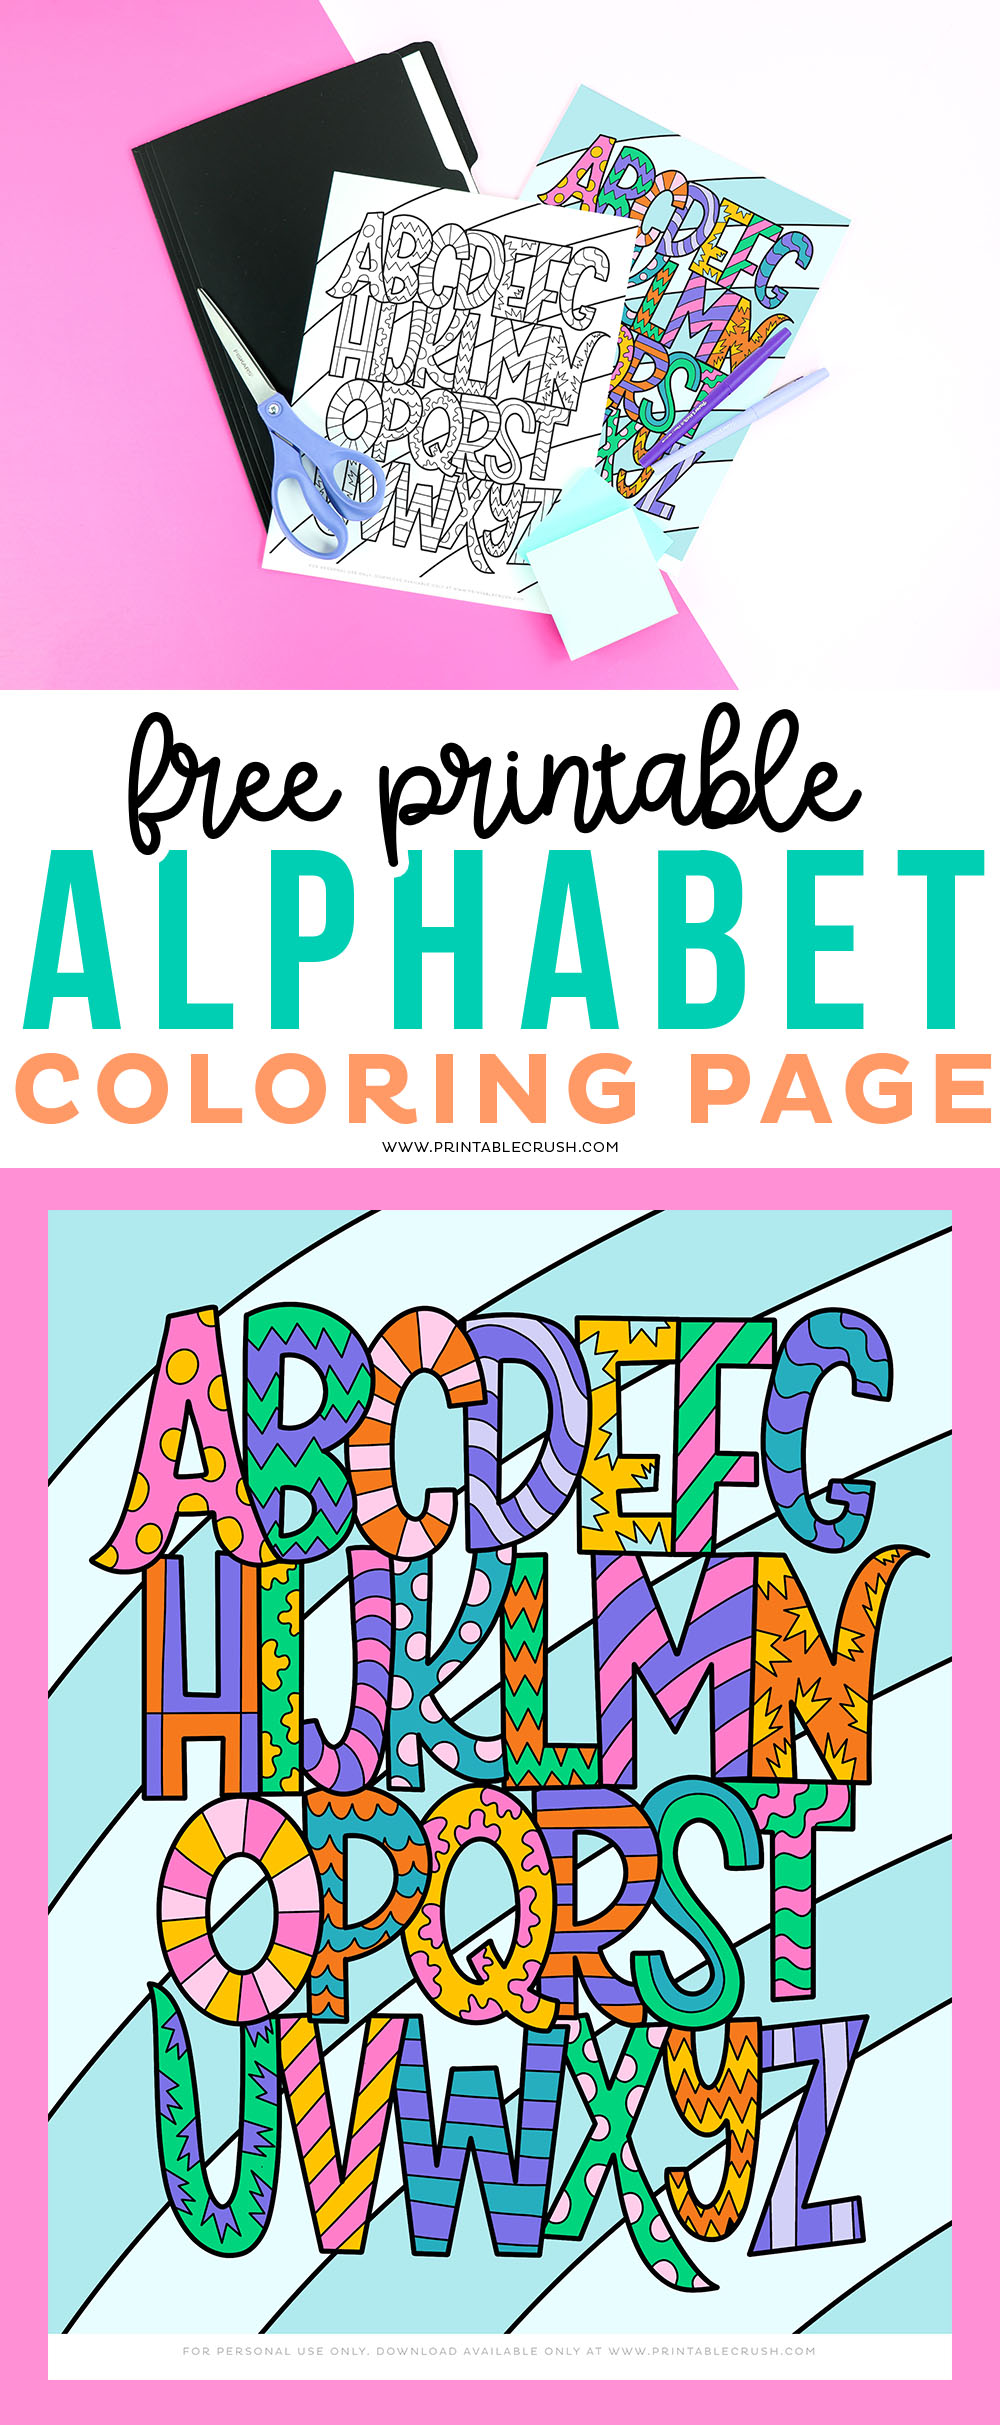 Help your kids learn their ABC's in a fun way with this Free Printable Alphabet Coloring Page! #freeprintable #coloringpage #preschoolactivity #alphabetcoloringpage #alphabetlearning via @printablecrush